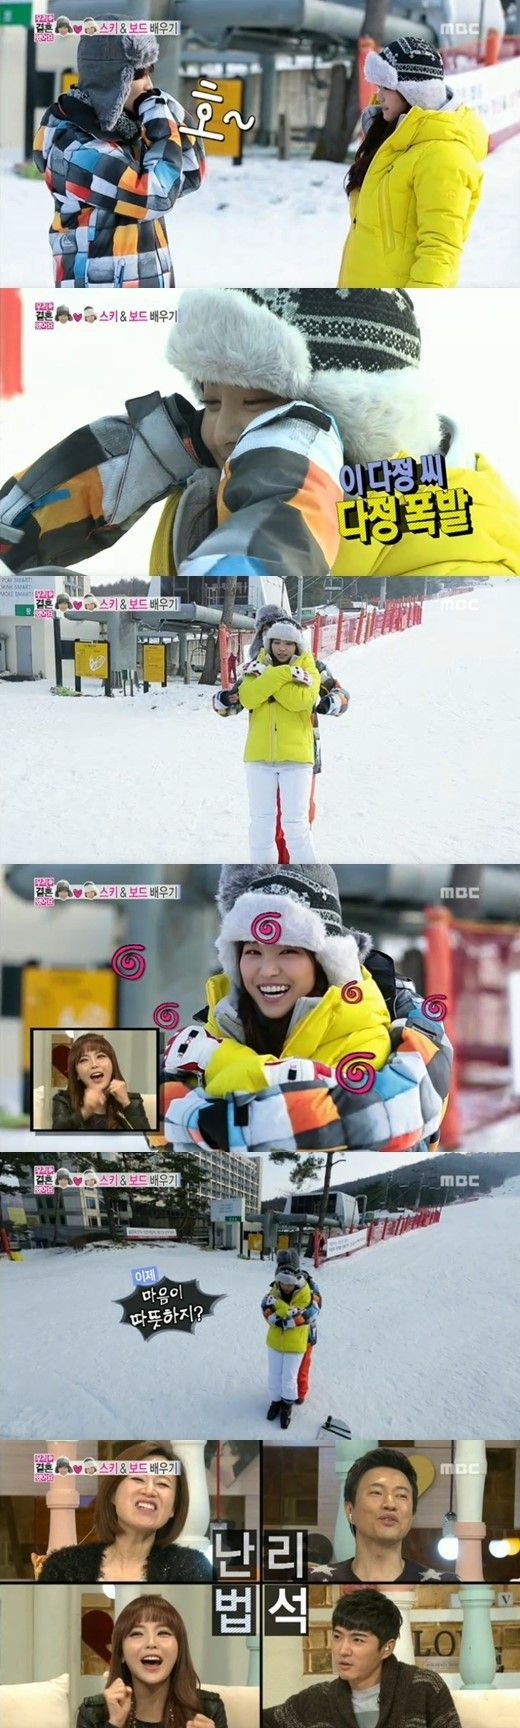 'We Got Married' Taemin-Son Naeun, Back Hug For the Cold Weather More: http://www.kpopstarz.com/articles/70514/20131223/we-got-married-taemin-son-naeun-back-hug-for-the-cold-weather.htm